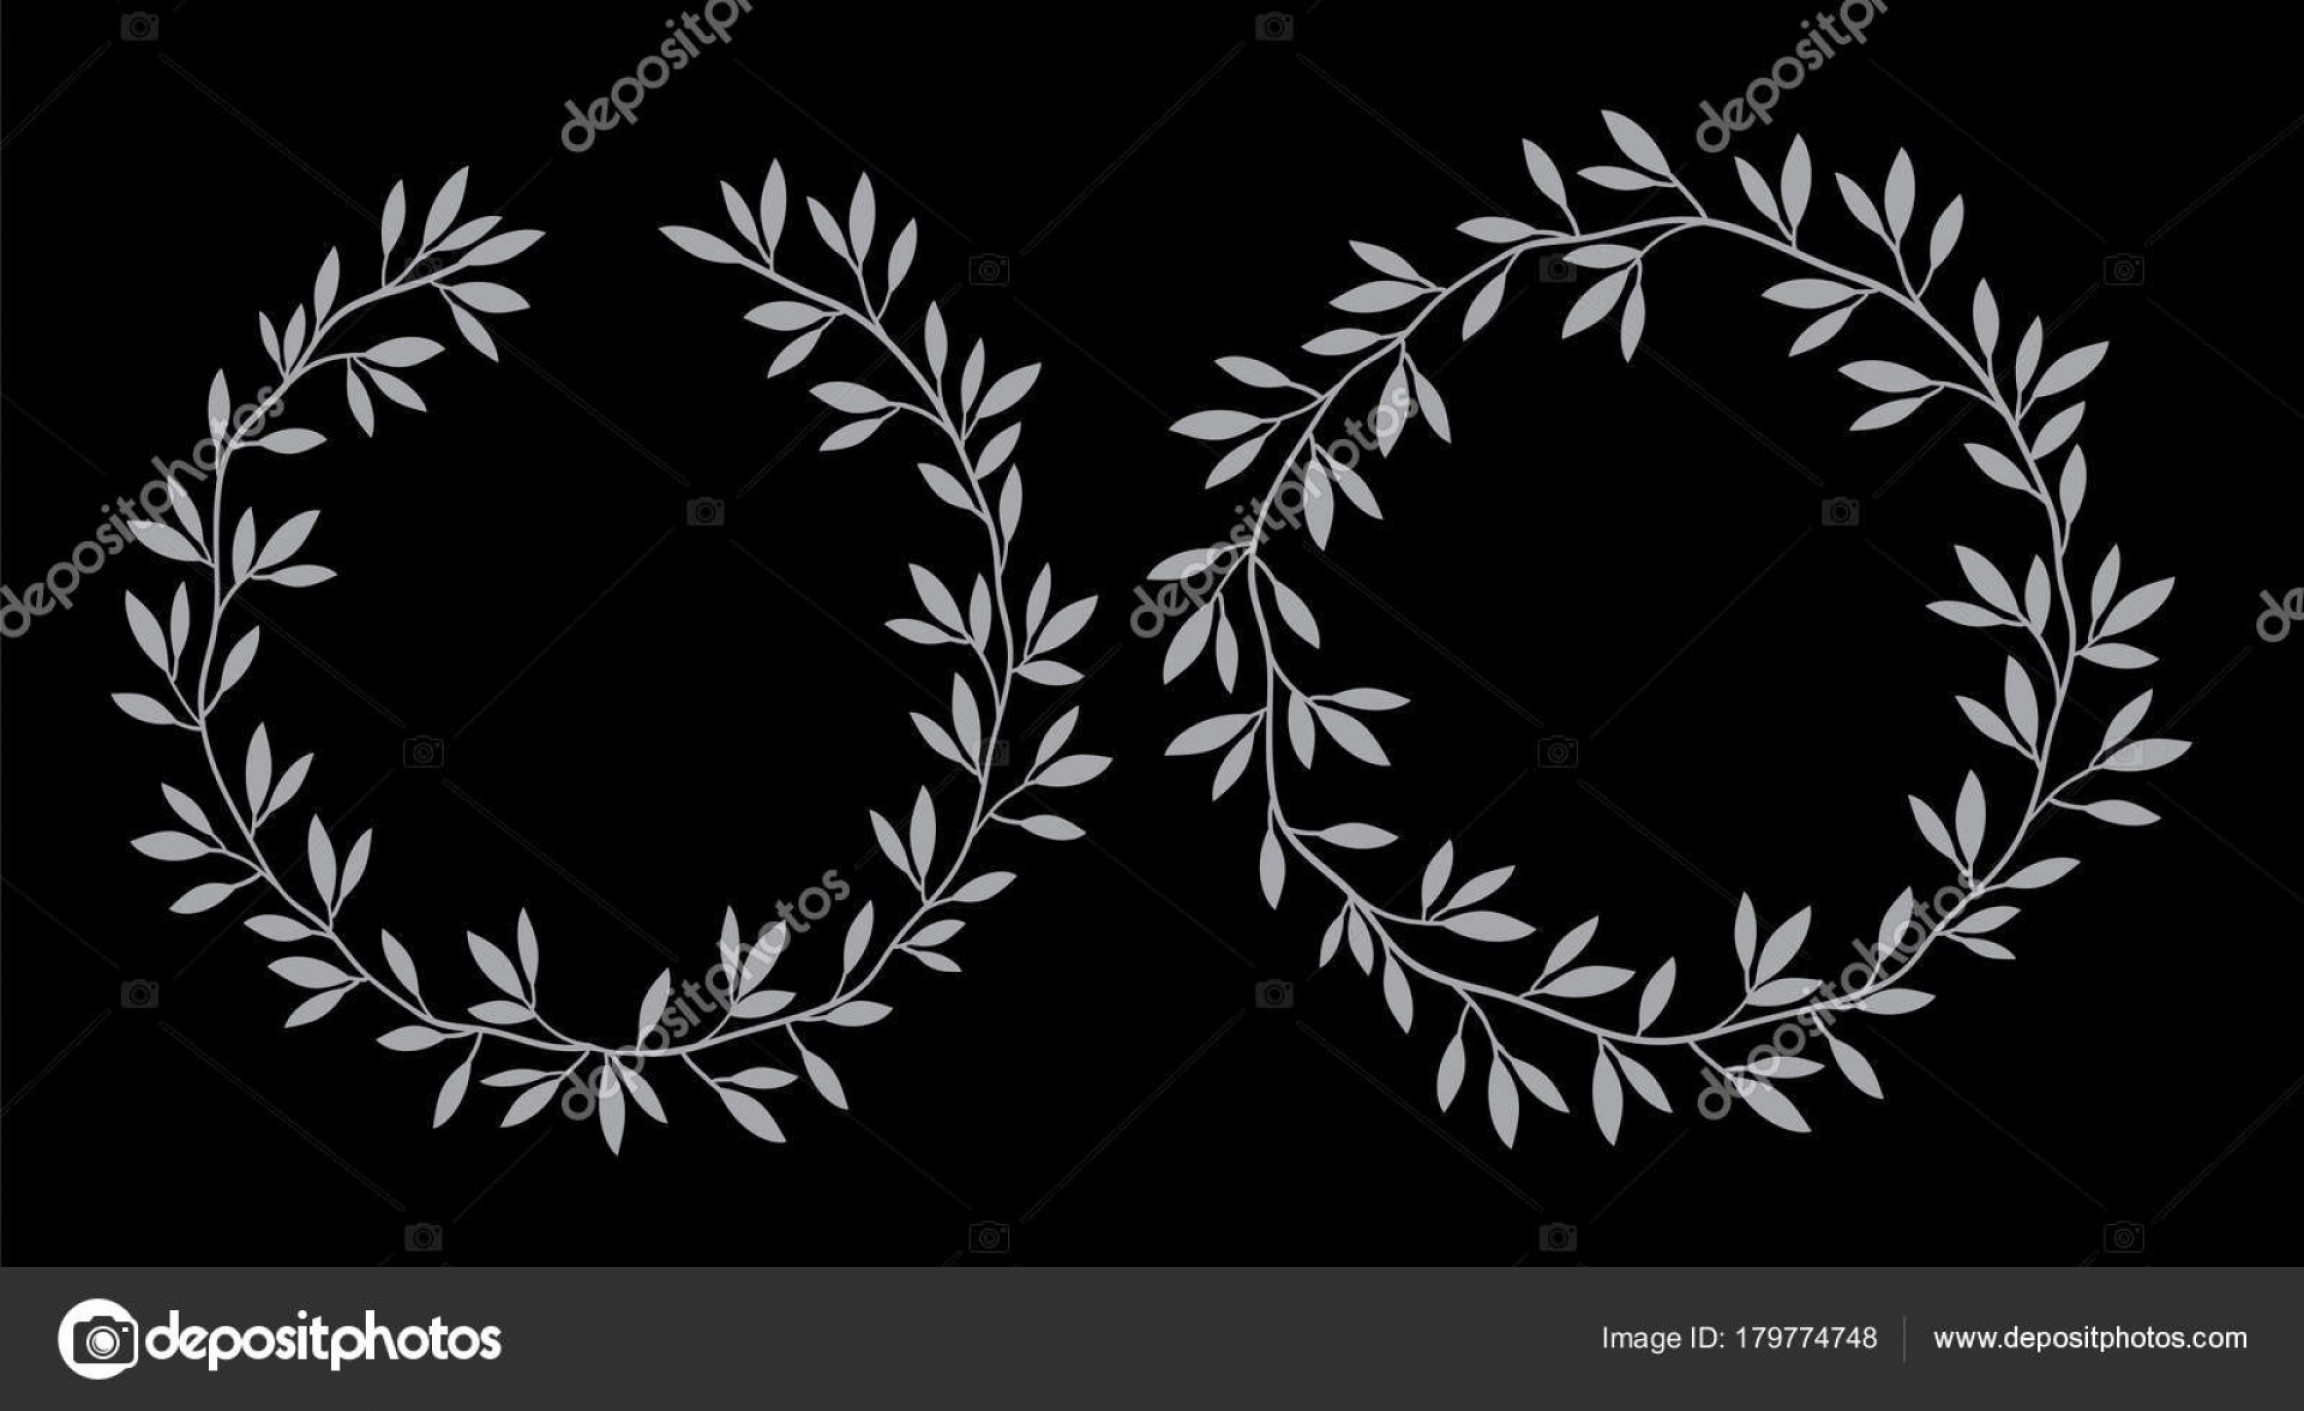 Floral Laurel Wreath Vector: Stock Illustration Silhouettes Vintage Floral Frames Laurel